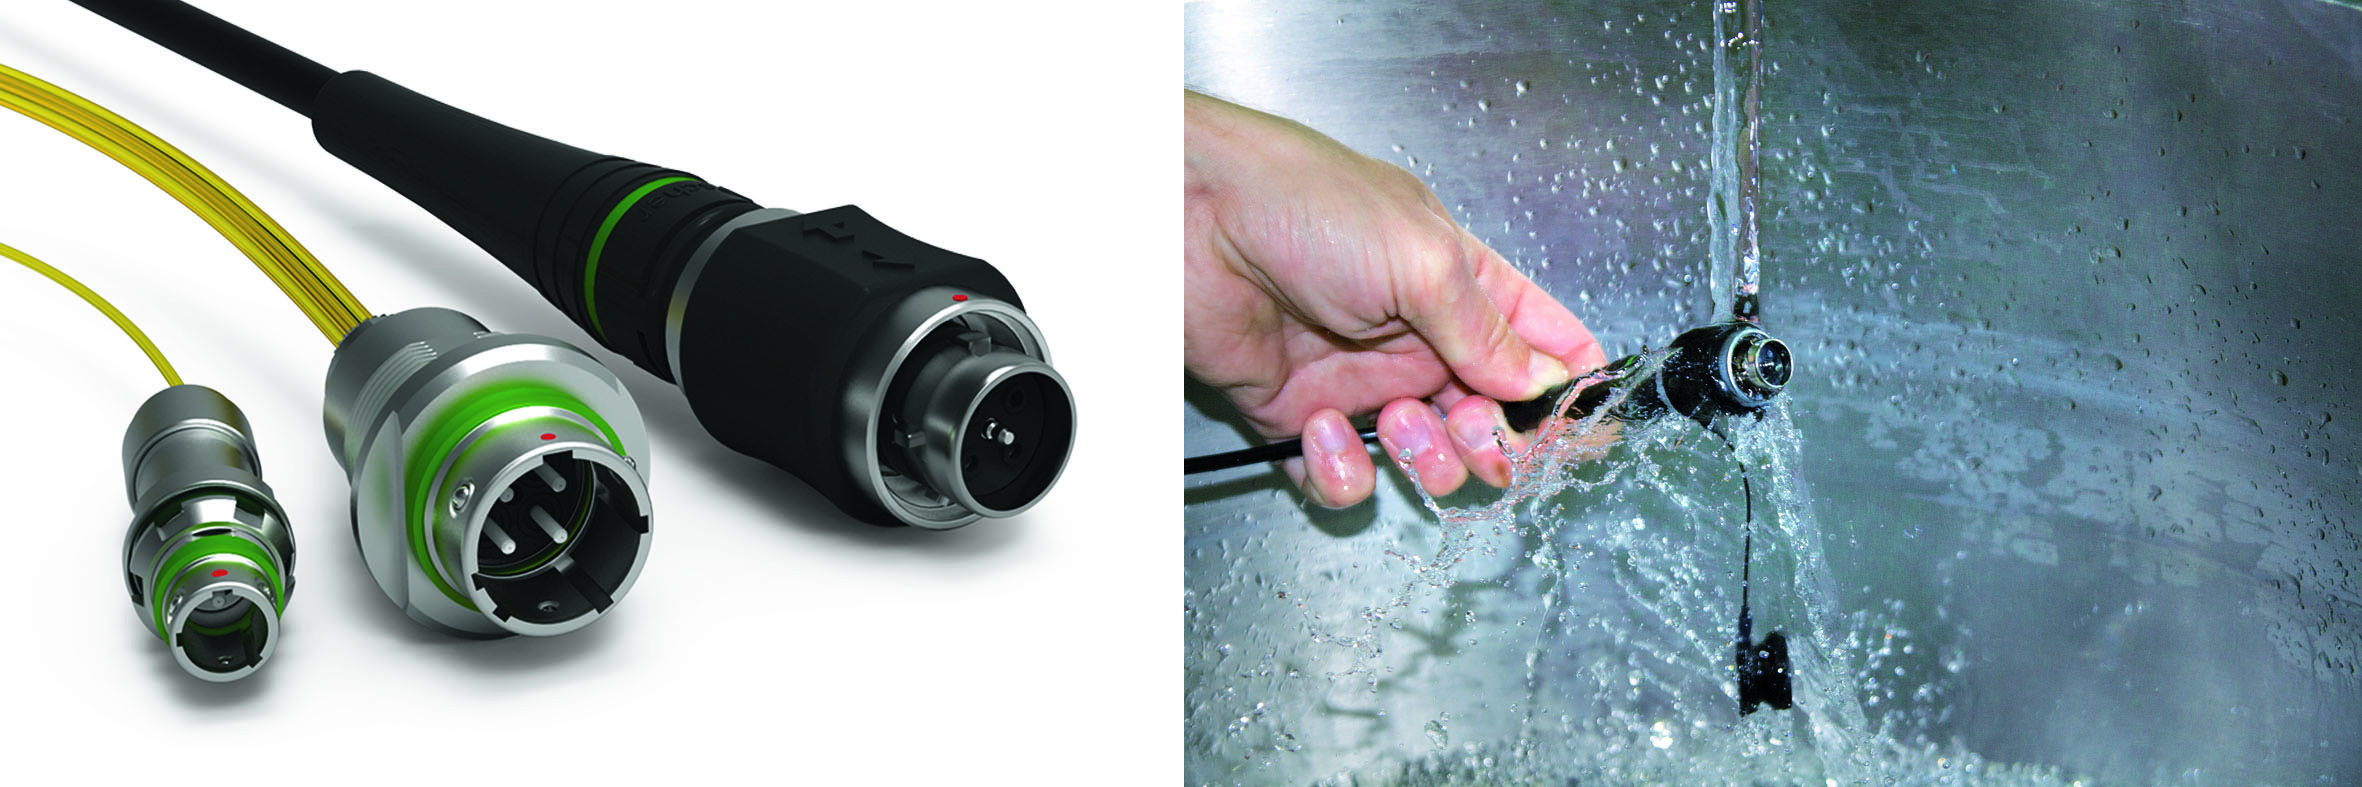 Fischer Connectors' optical connectivity solutions are also rugged: IP68 sealing easy use, cleaning and maintenance.